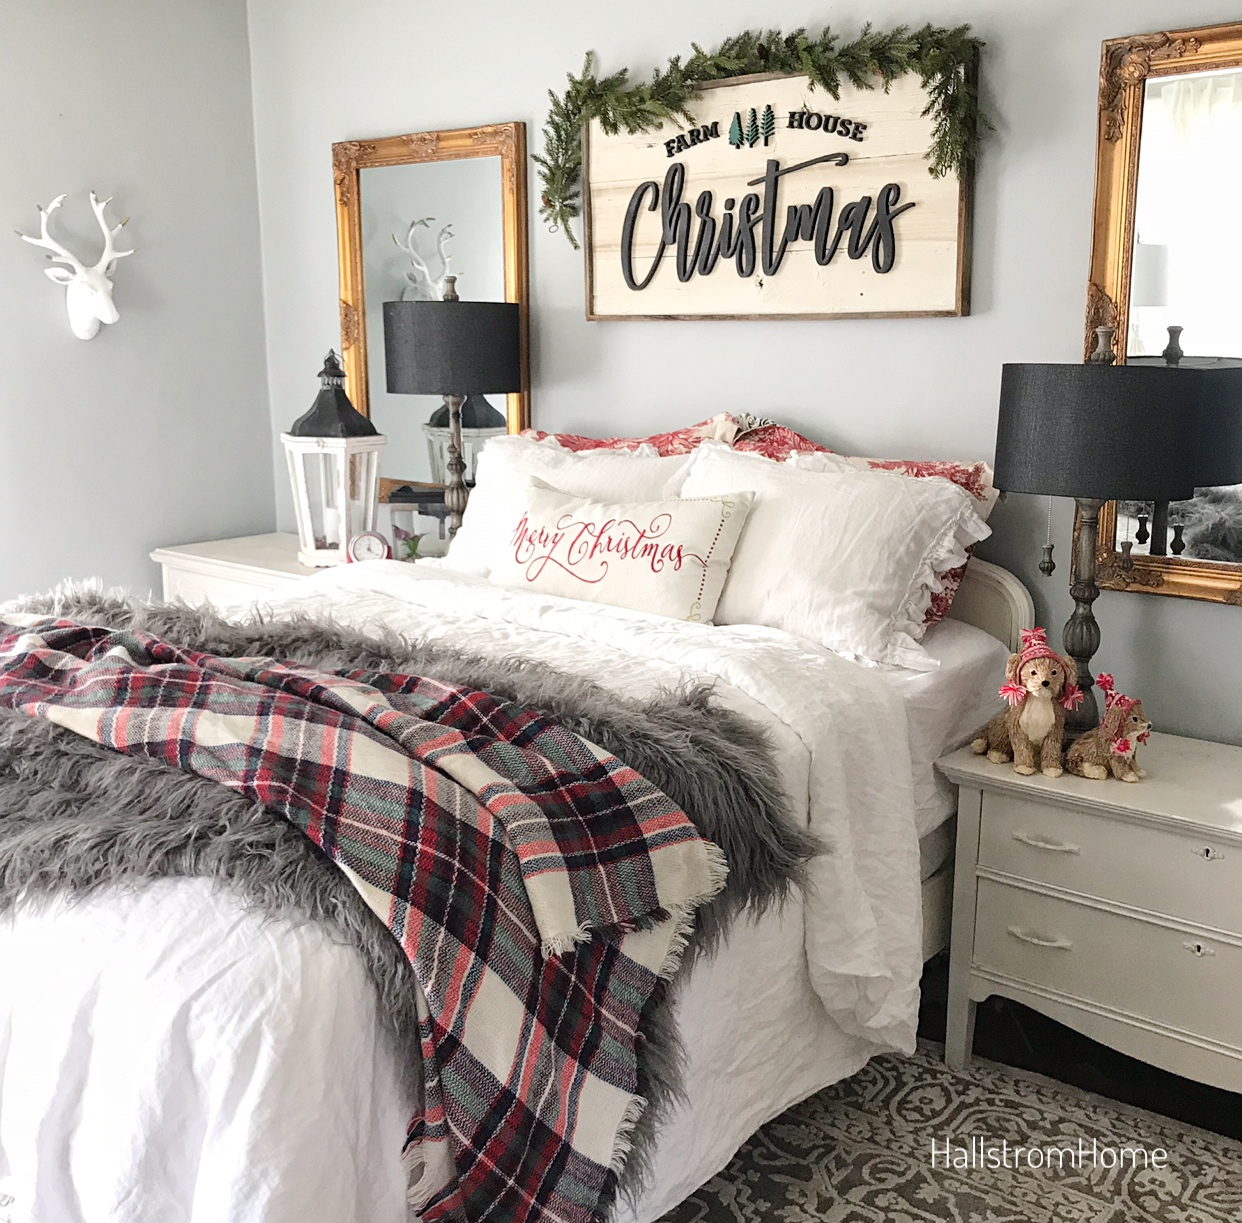 Bedroom Decor Supplies: Easy Holiday Bedroom Tips